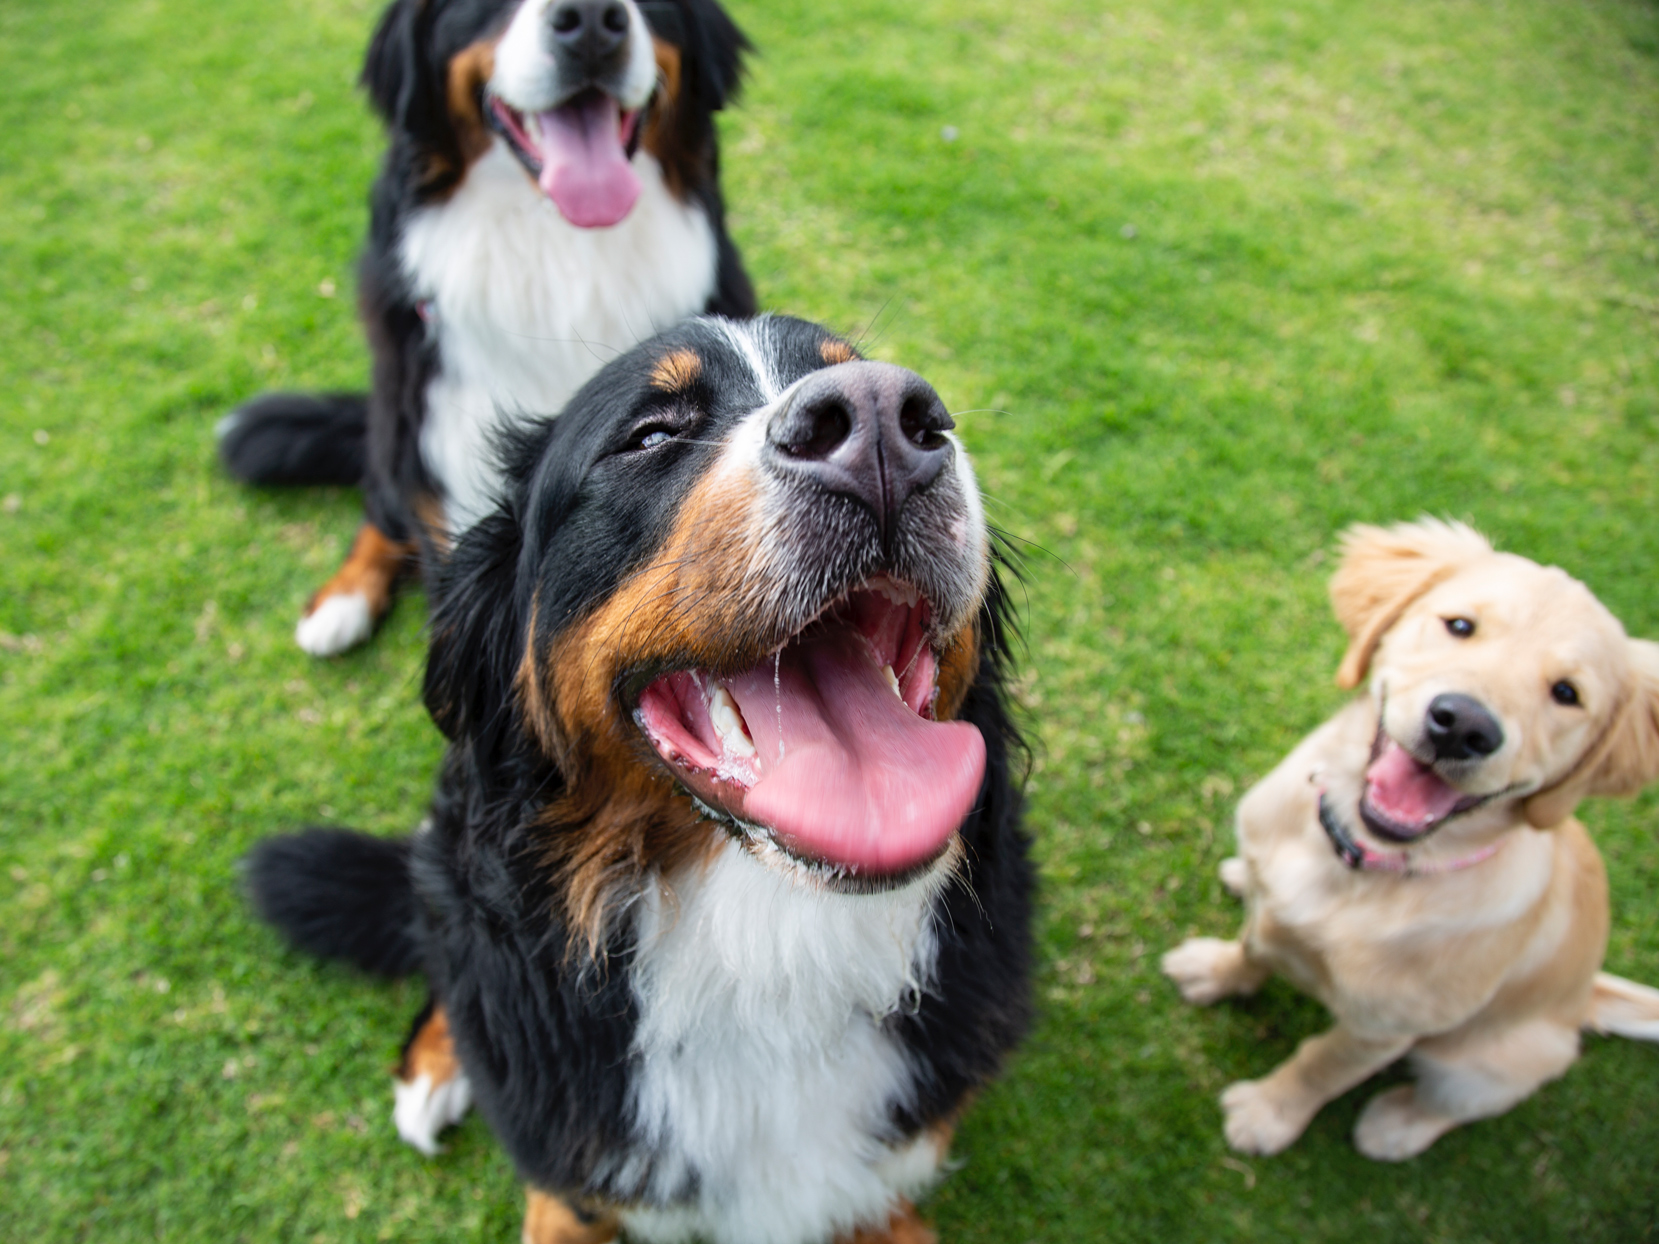 three dogs at a grassy park outside